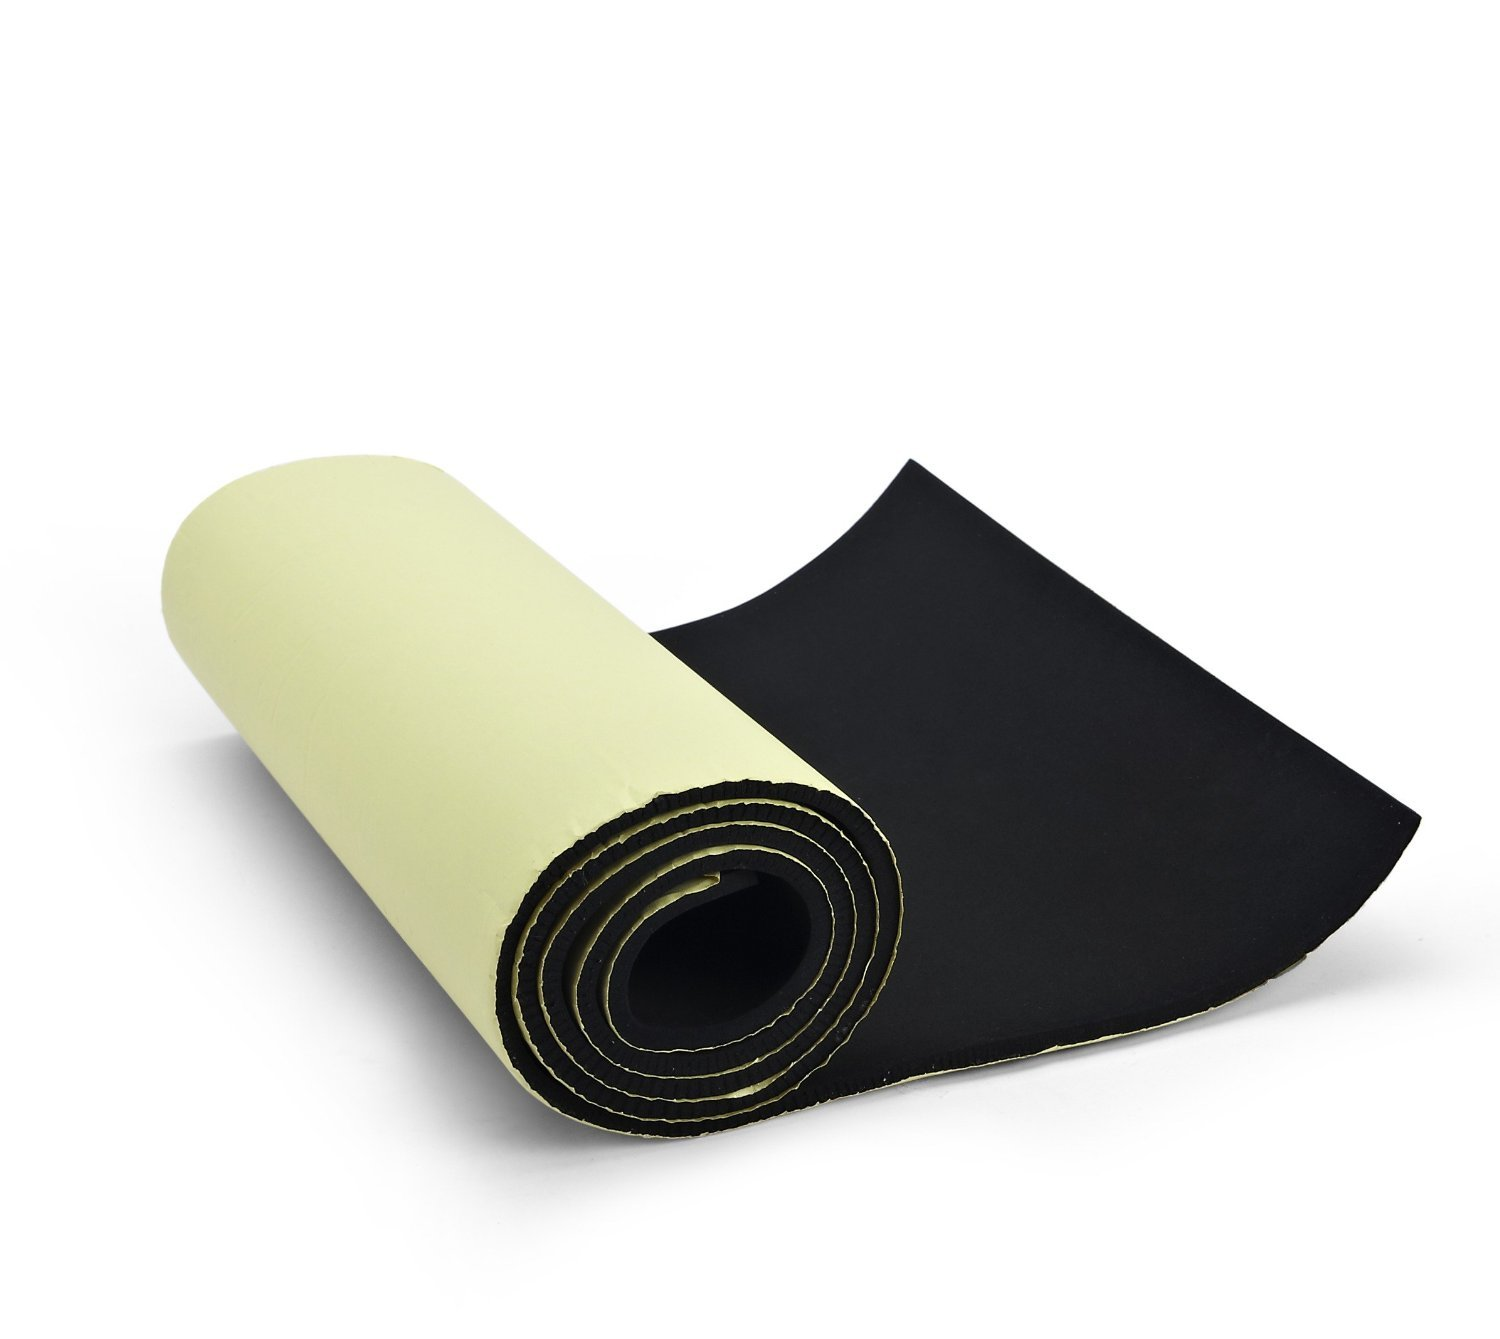 "Primode sponge Neoprene Roll, With Adhesive Bottom, For Multi Purpose Use, 1/4"" Thick X 14"" Wide X 58"" Long"